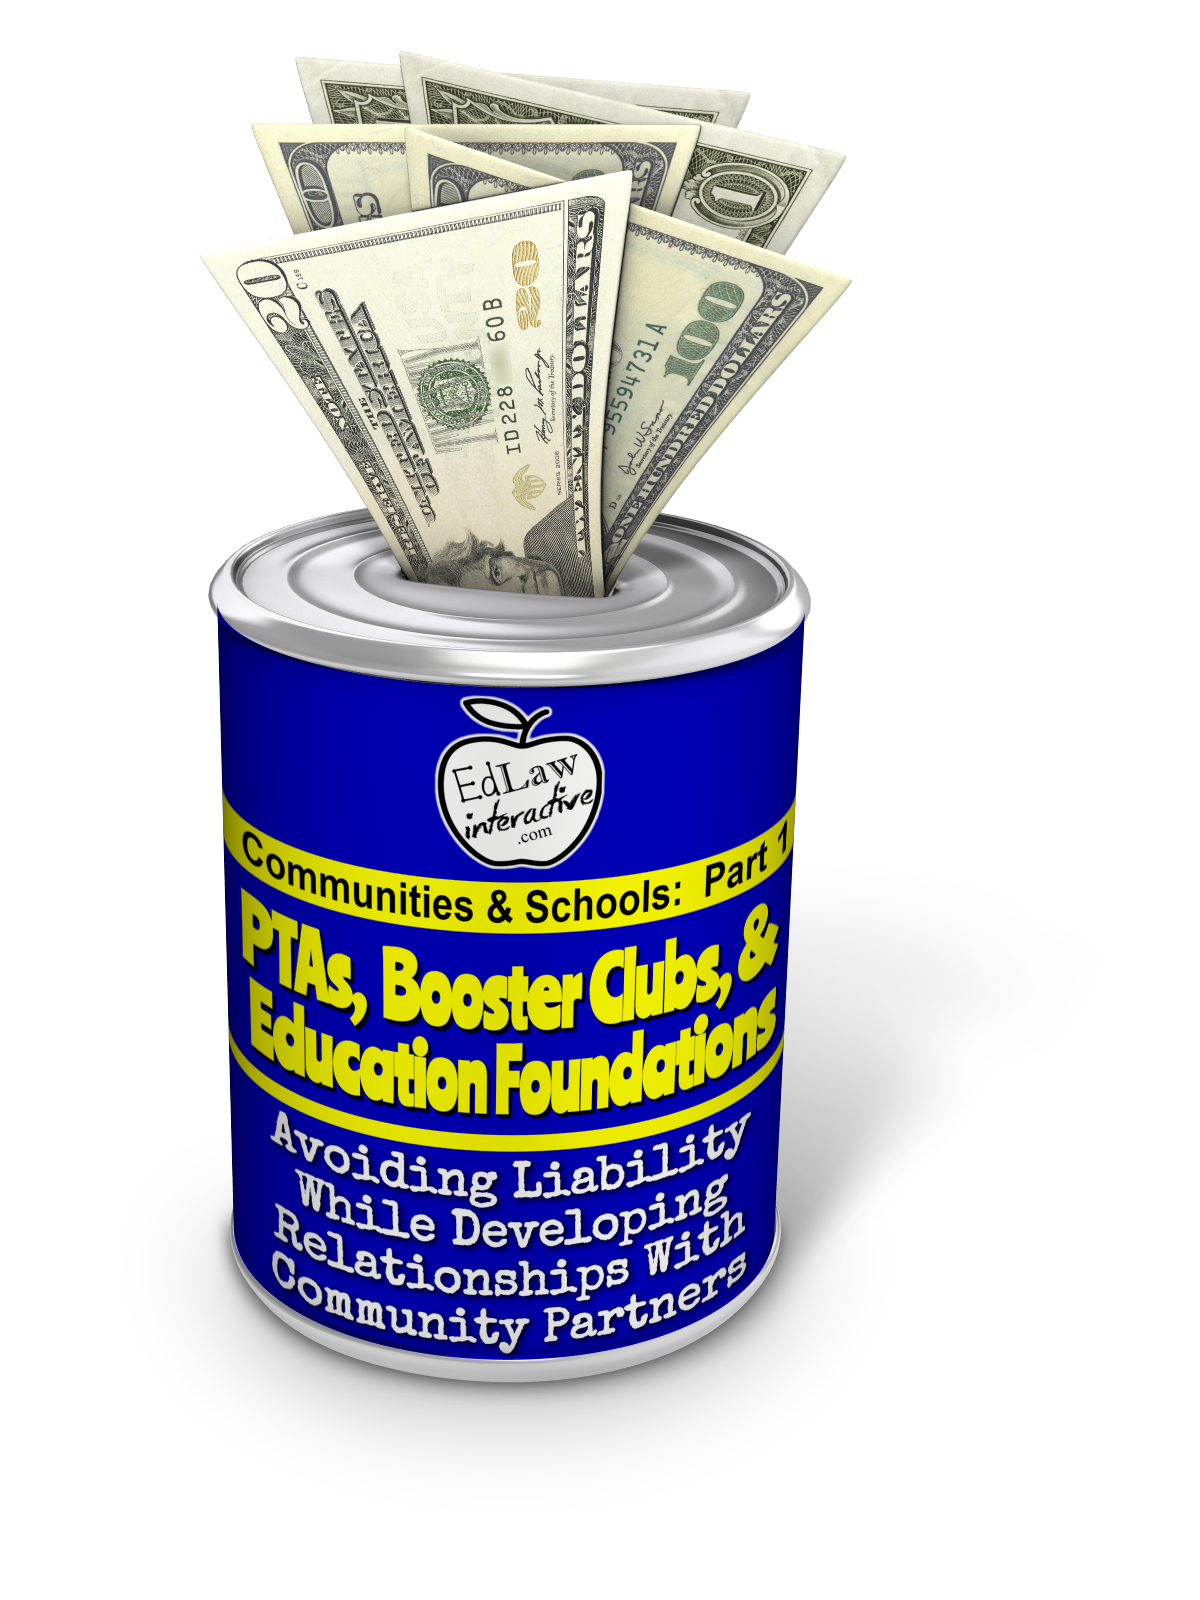 PTAs Booster Clubs and Educational Found